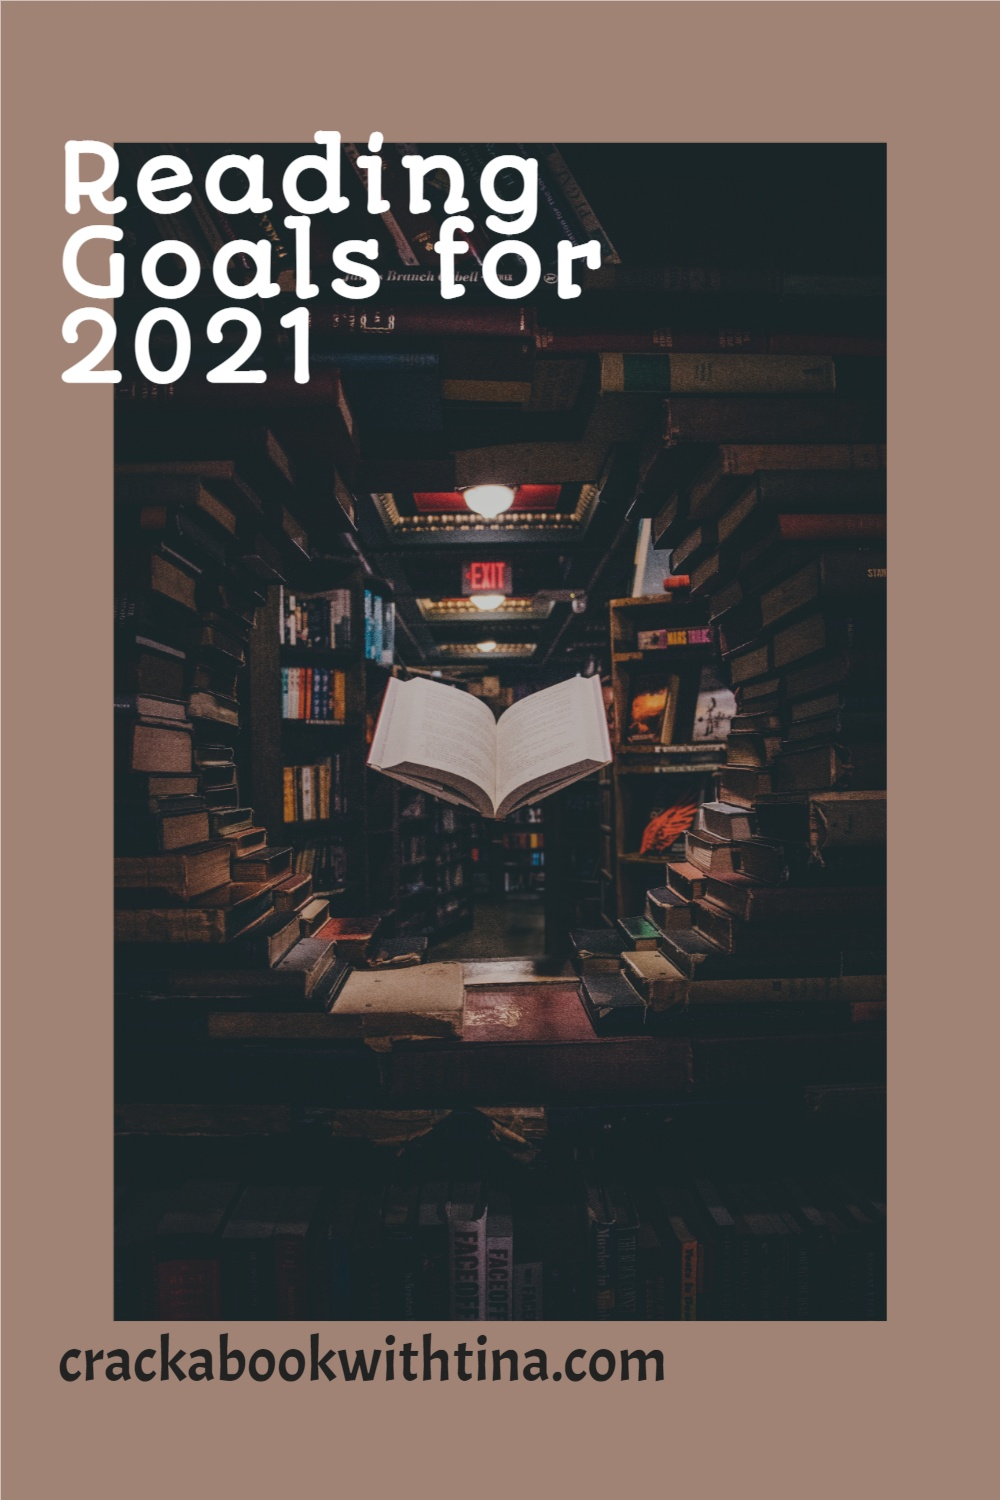 Reading Goals for 2021